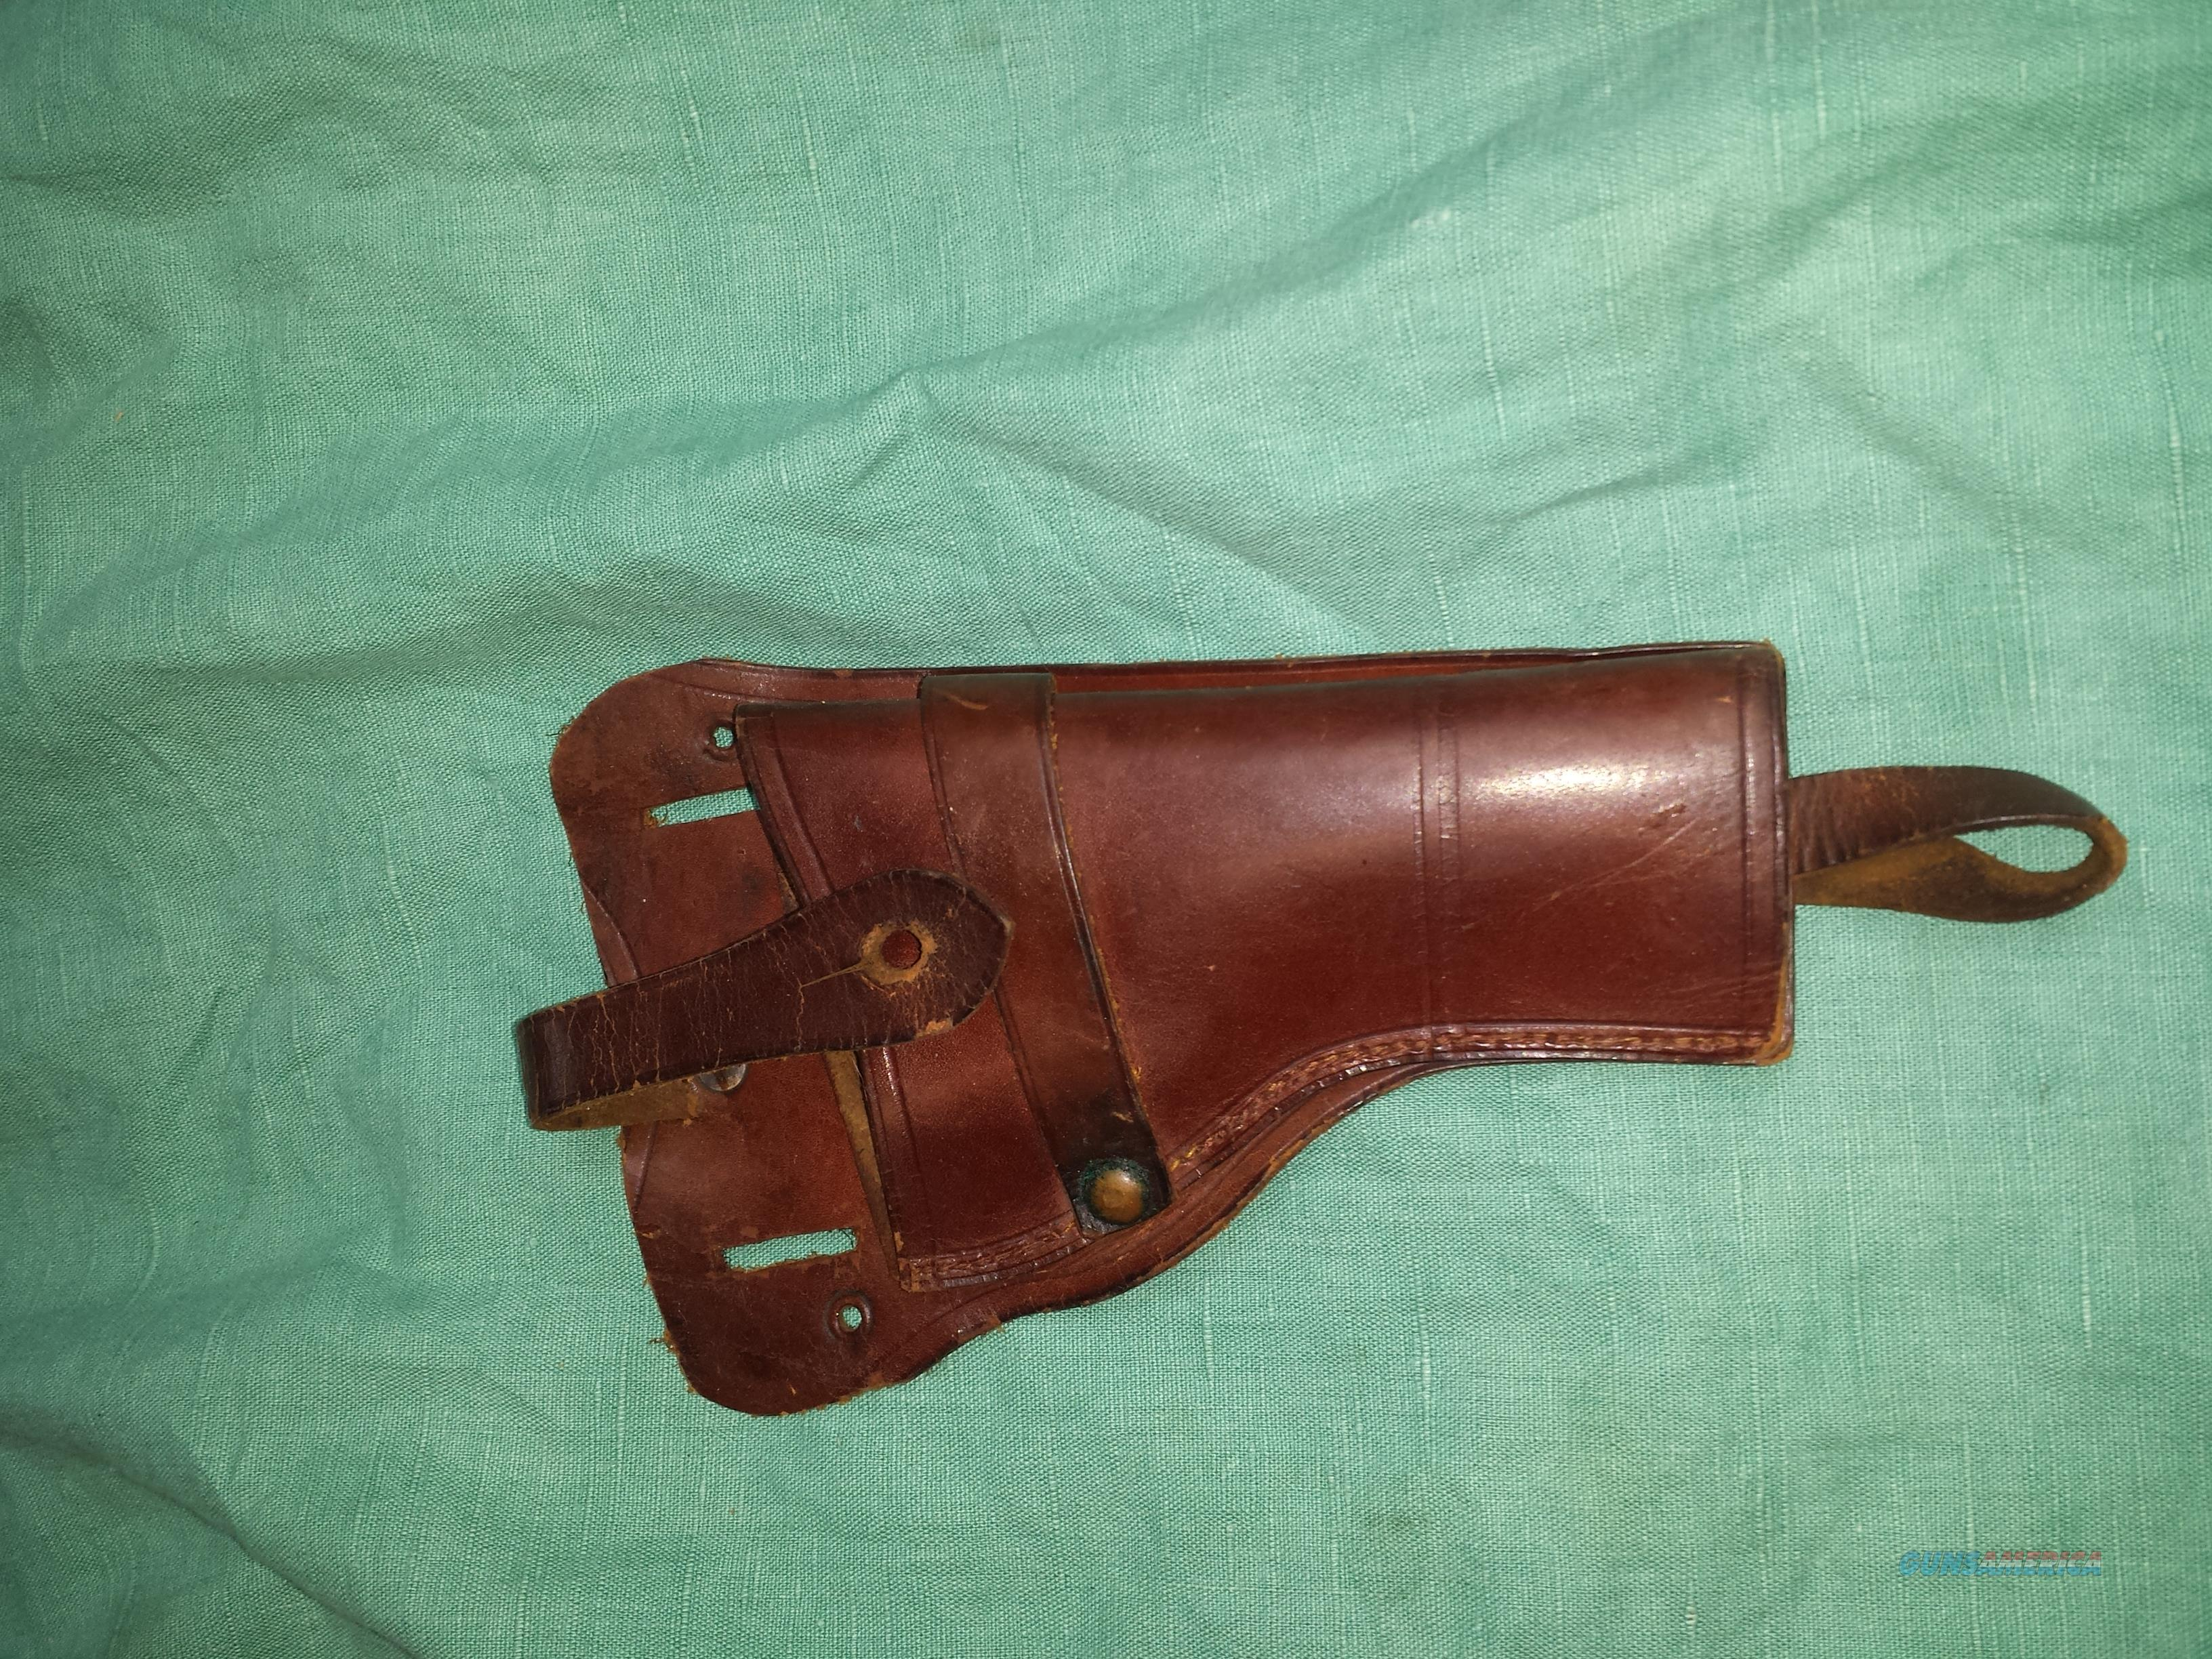 LARGE FRAME AUTO LEATHER HOLSTER  Non-Guns > Holsters and Gunleather > Large Frame Auto